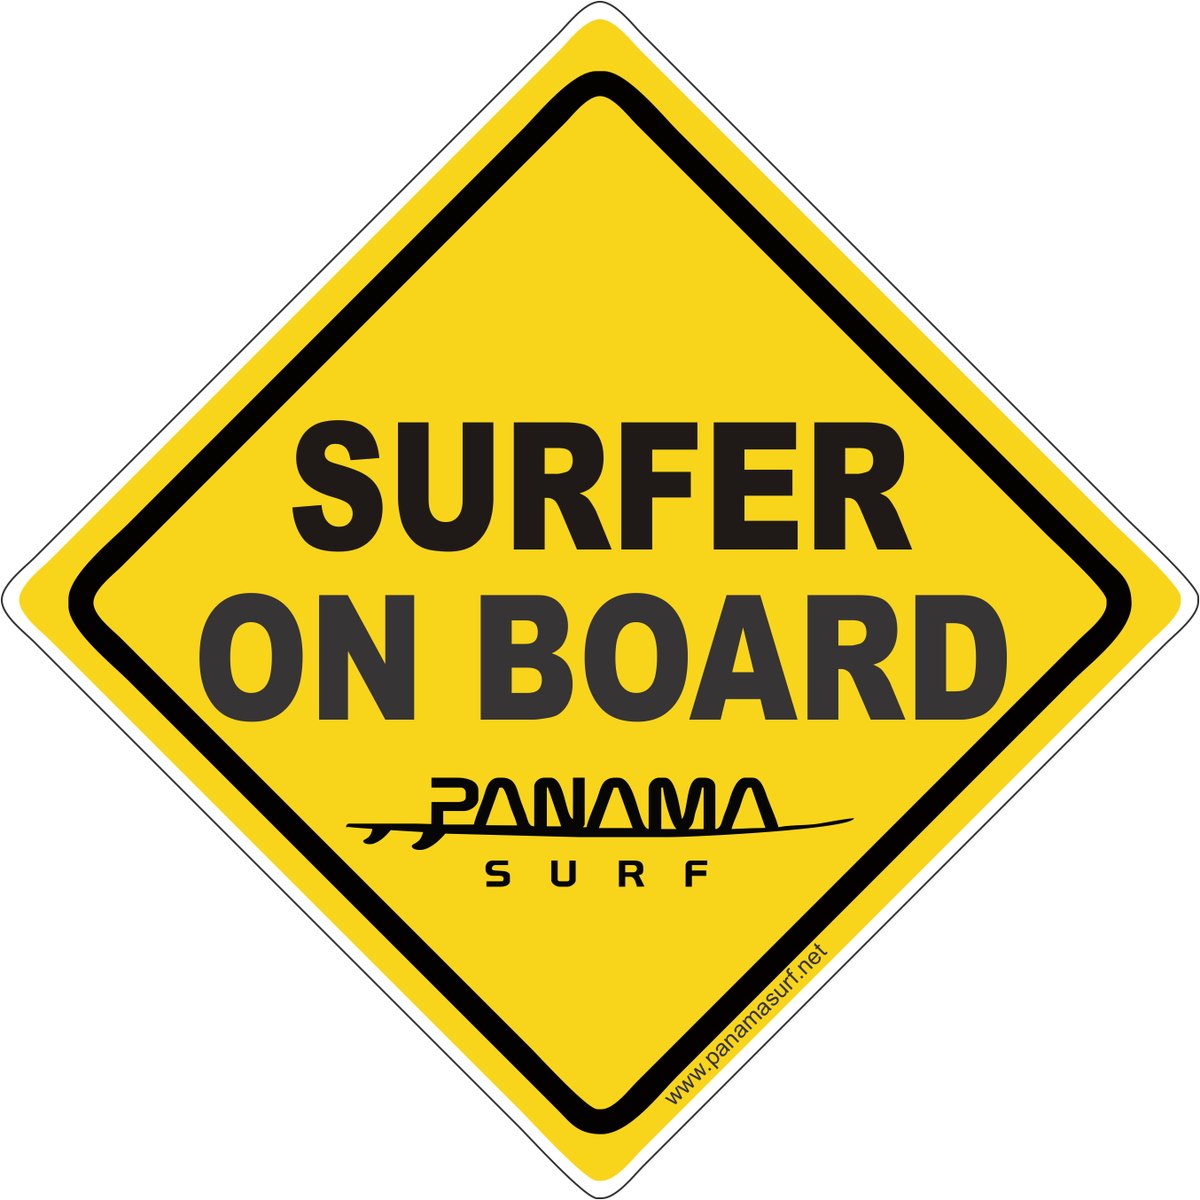 "SURFER ON BOARD decal Die cut sticker. Printed vinyl decal. Approximately 5"" wide x 5"" tall."